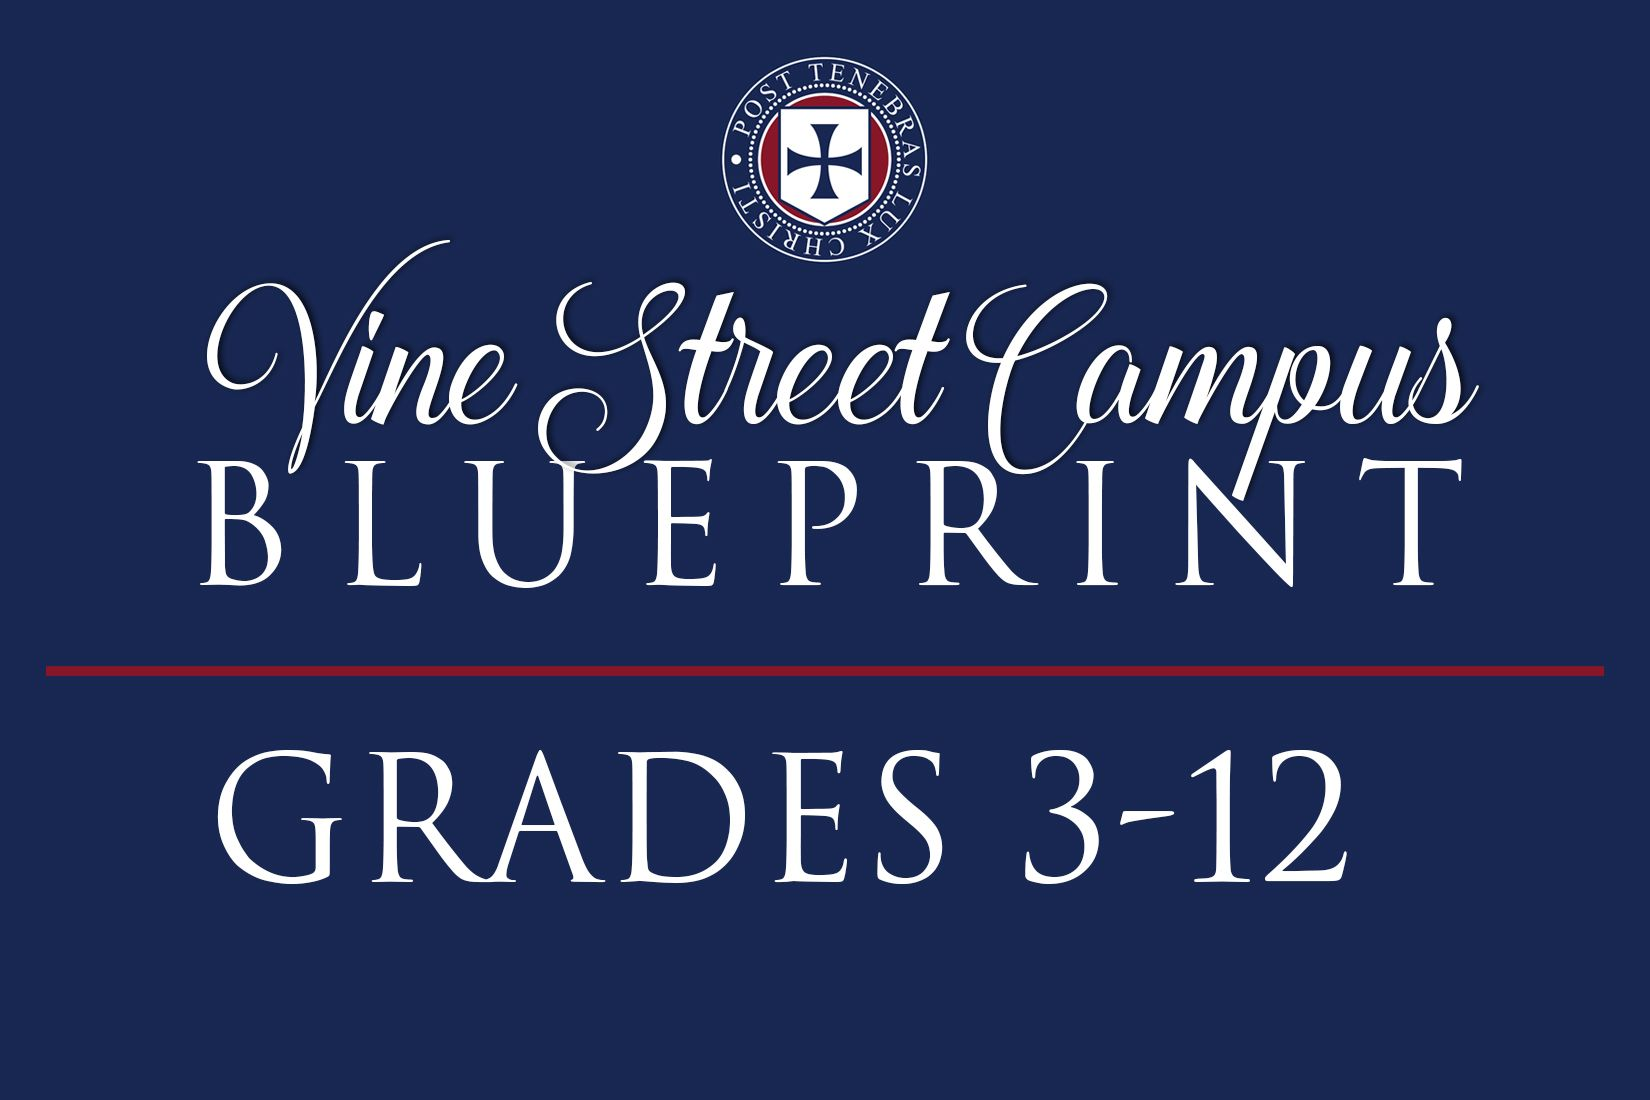 Reopening Blueprint: Vine Street Campus